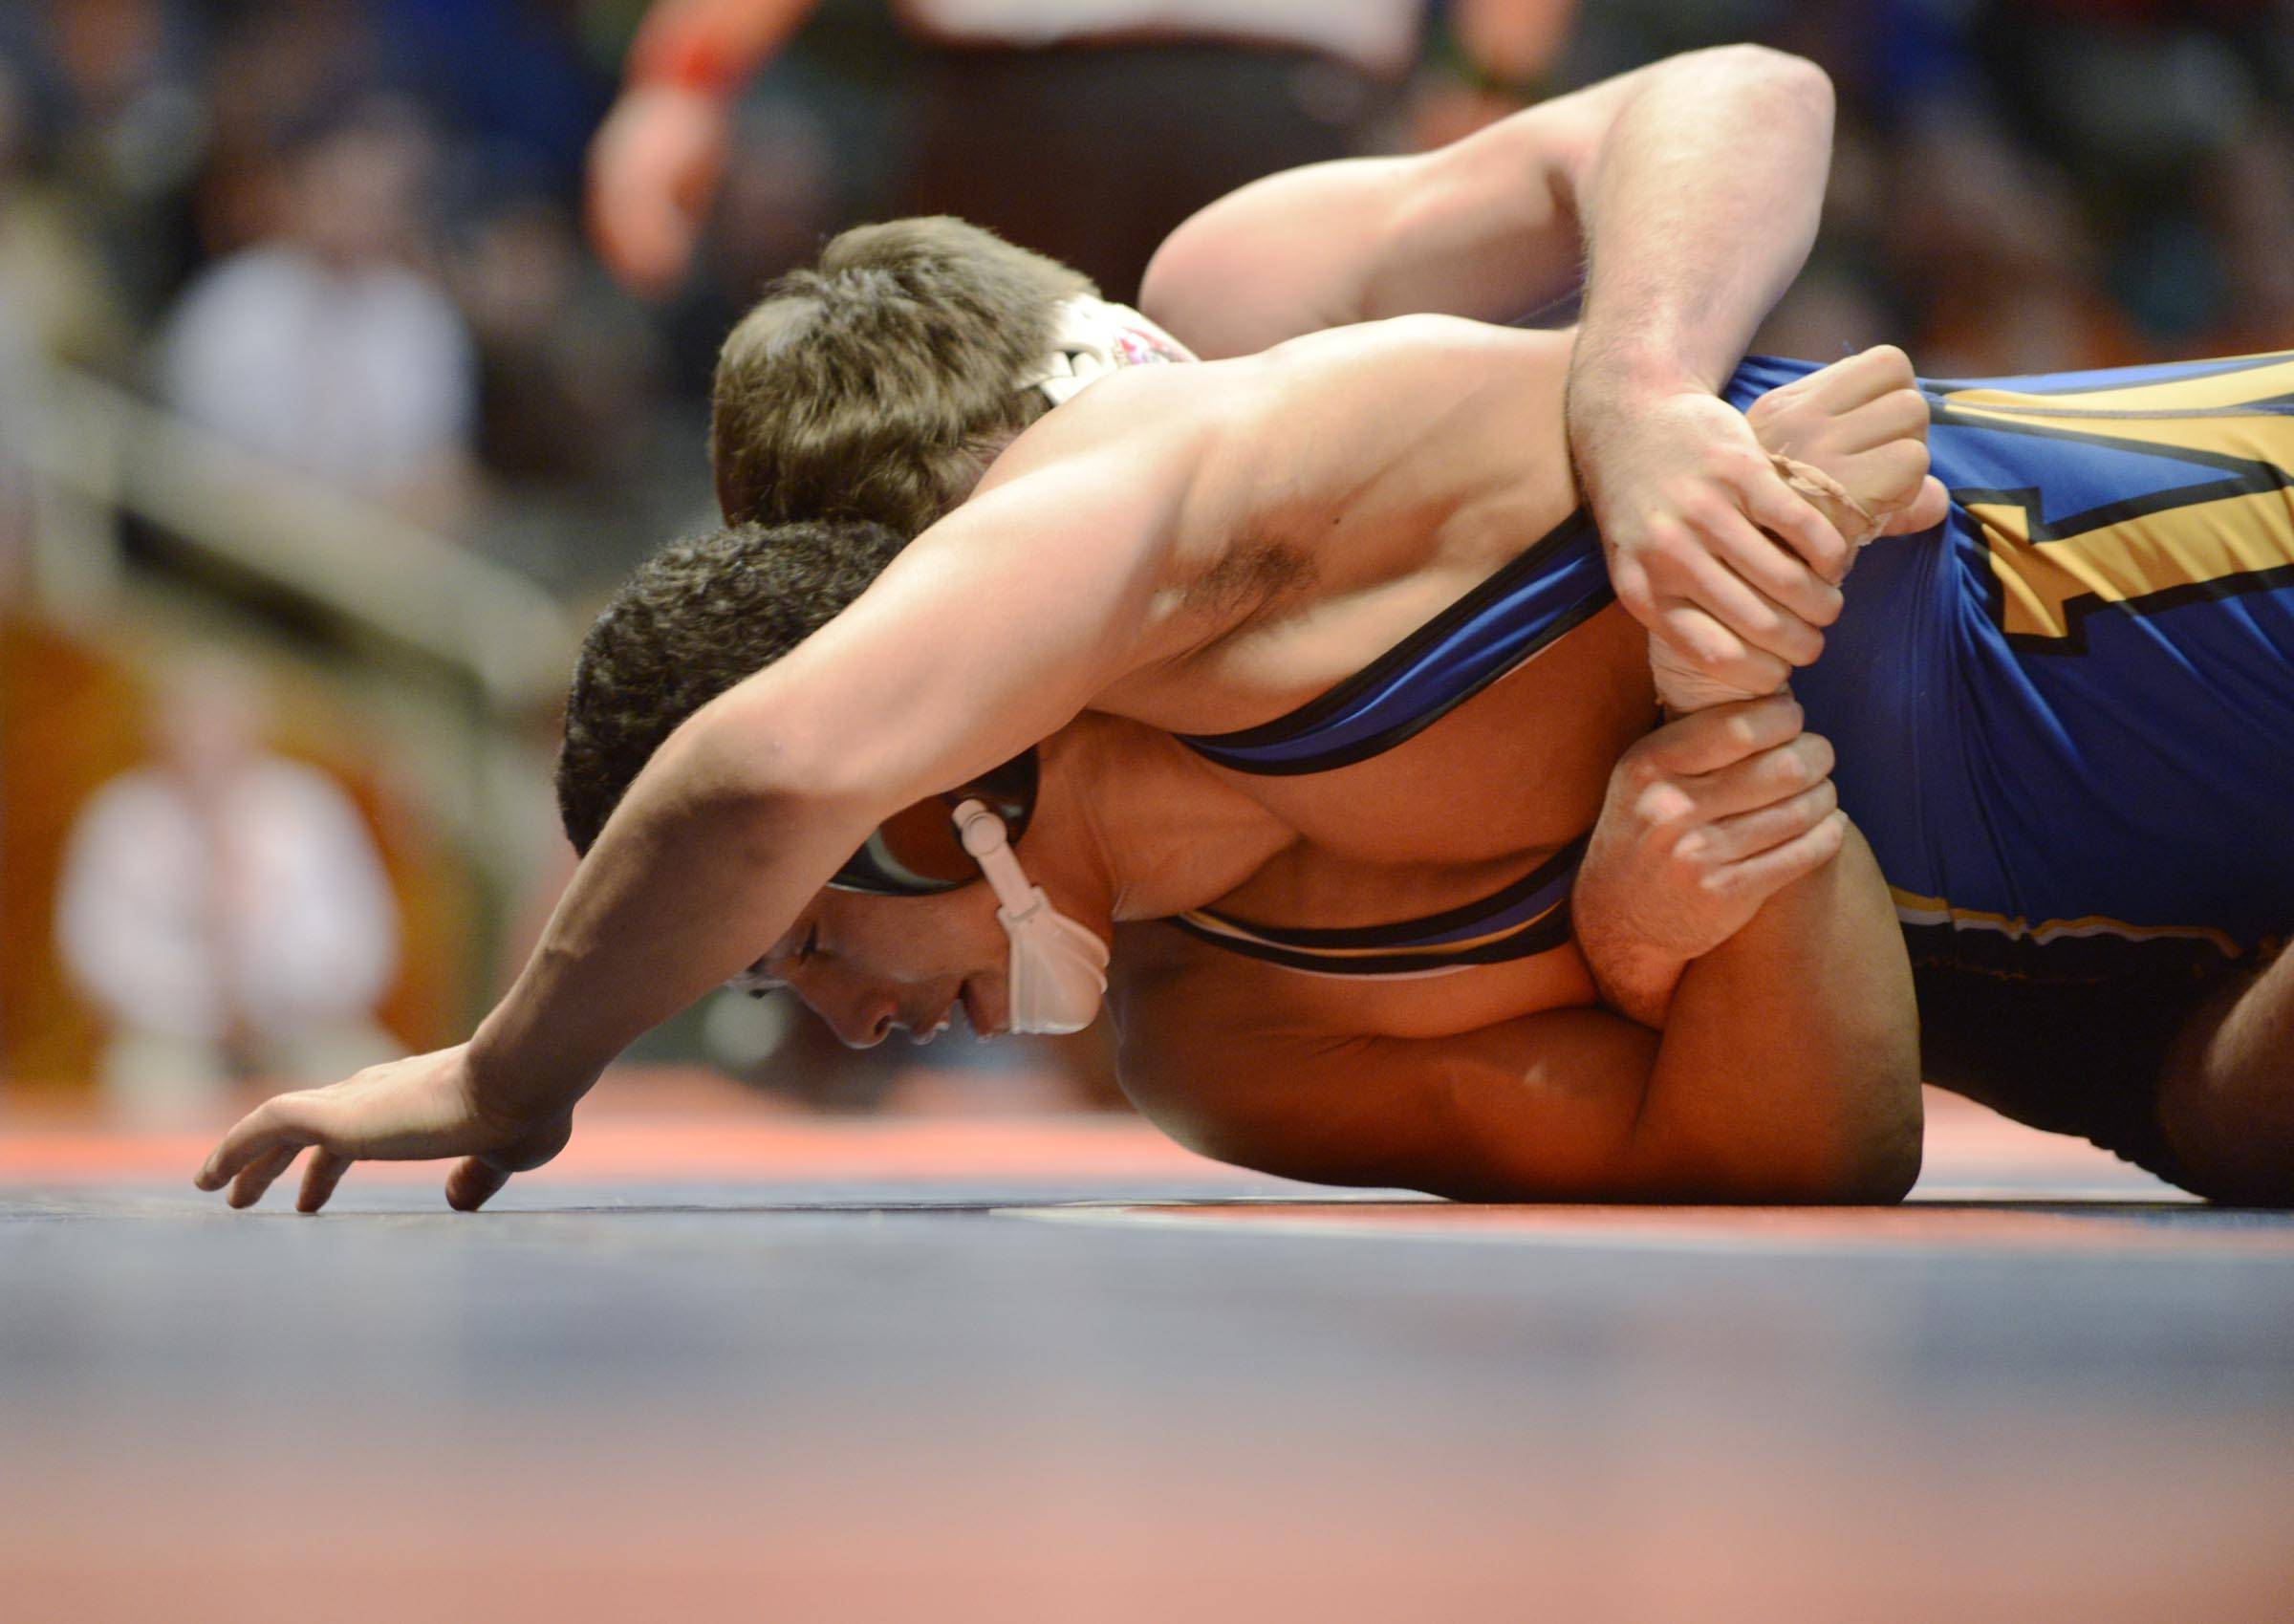 Emery Parker of Warren High School tries to escape Peter Andreotti of Marist High School Friday in the 160-pound weight class semifinals of the wrestling IHSA Class 3A state tournament at State Farm Center in Champaign.